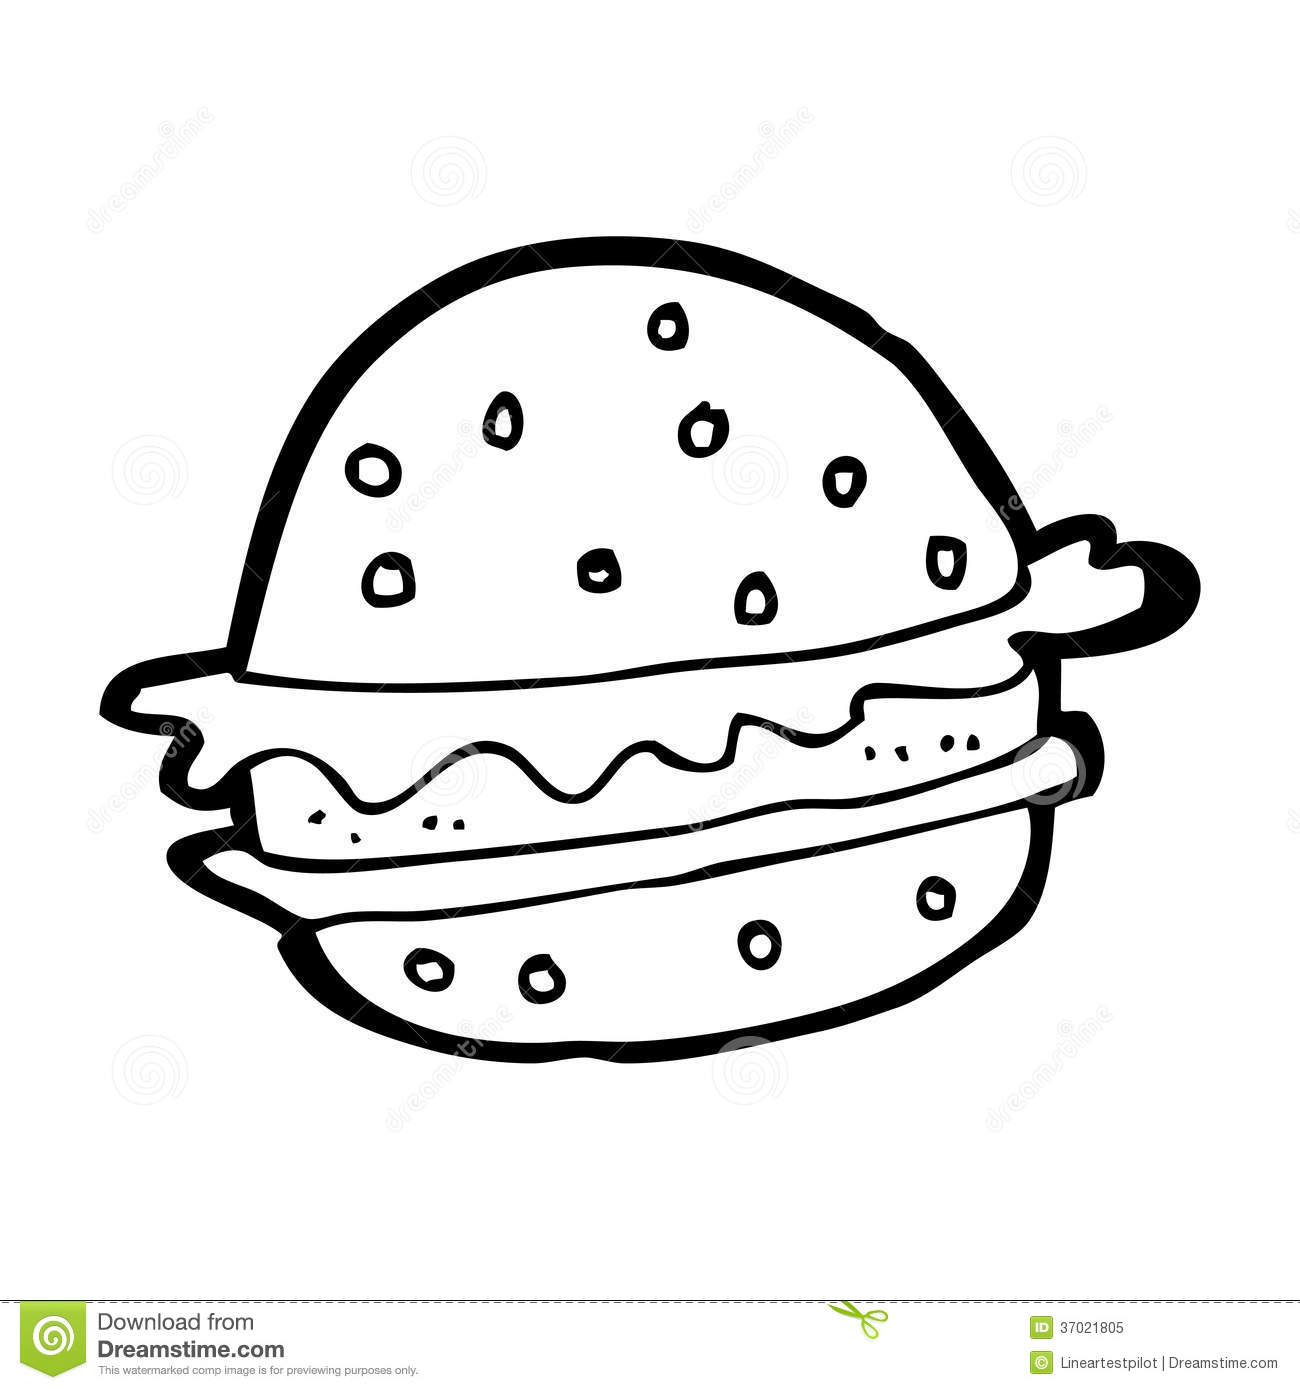 Hamburger Black And White Clipart - Clipart Kid